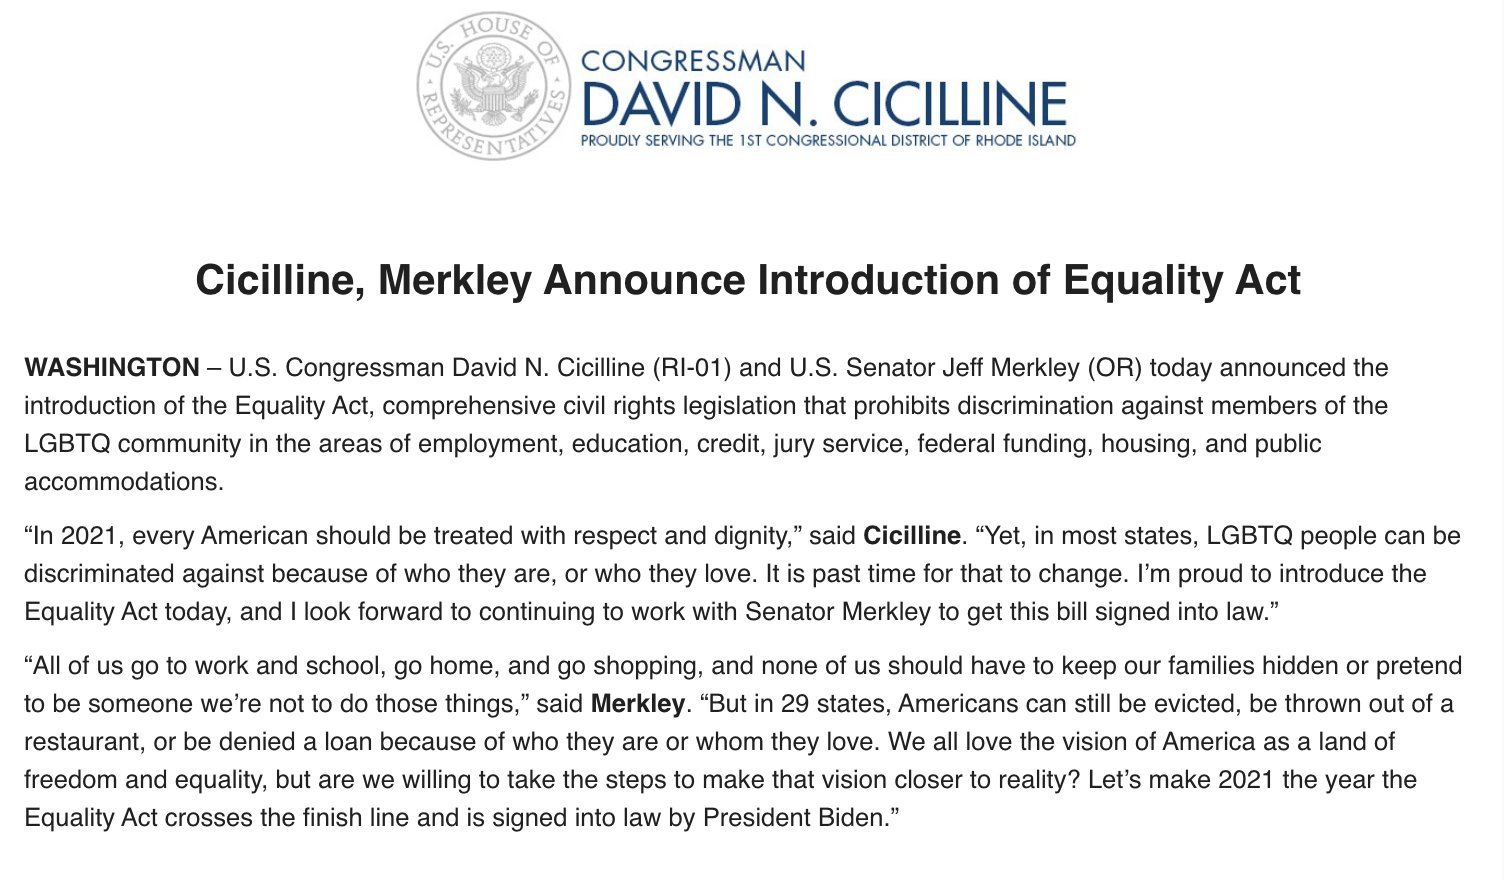 A screenshot of a press release introducing the Equality Act from Rep. Cicilline and Sen. Merkley. The introduction says: U.S. Congressman David N. Cicilline (RI-01) and U.S. Senator Jeff Merkley (OR) today announced the introduction of the Equality Act, comprehensive civil rights legislation that prohibits discrimination against members of the LGBTQ community in the areas of employment, education, credit, jury service, federal funding, housing, and public accommodations.